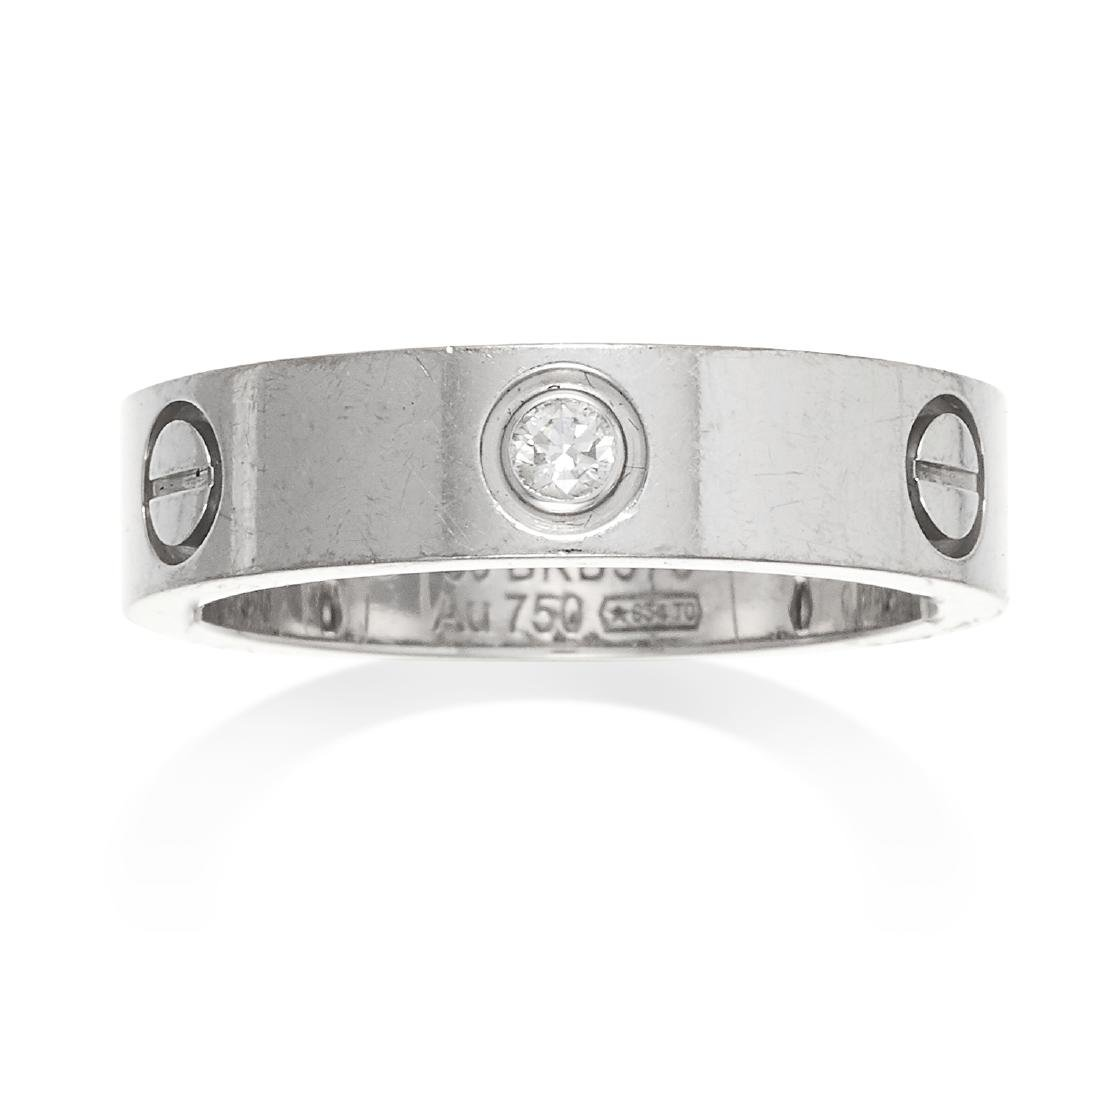 A DIAMOND LOVE RING, CARTIER in 18ct white gold,